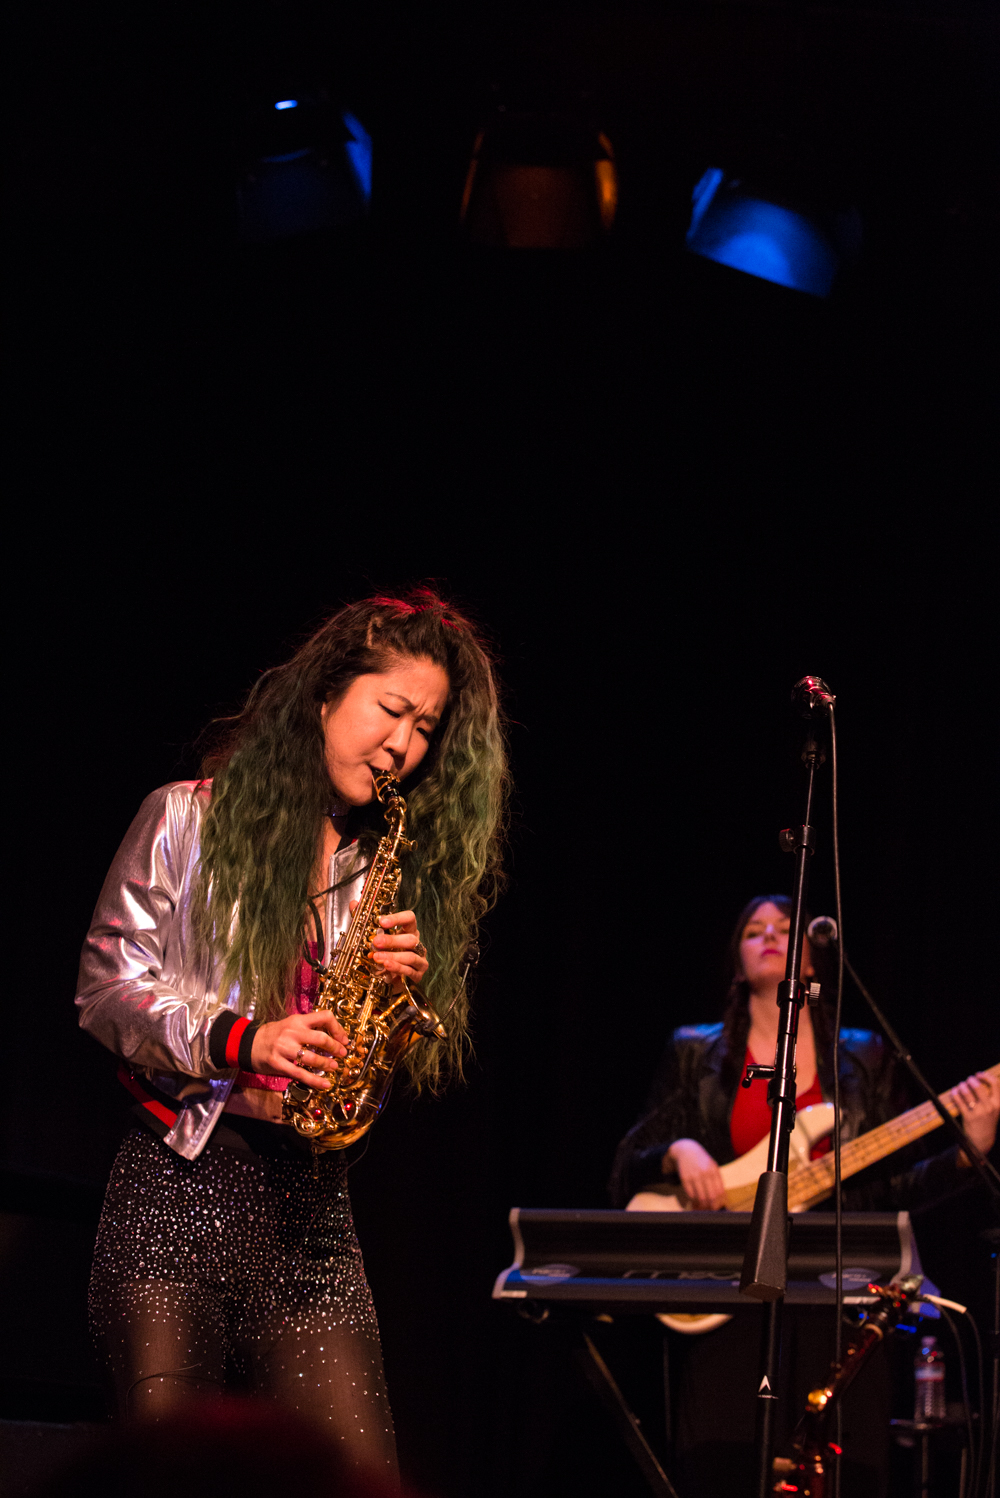 saxophone-player-yoshis-oakland-grace-kelly.jpg